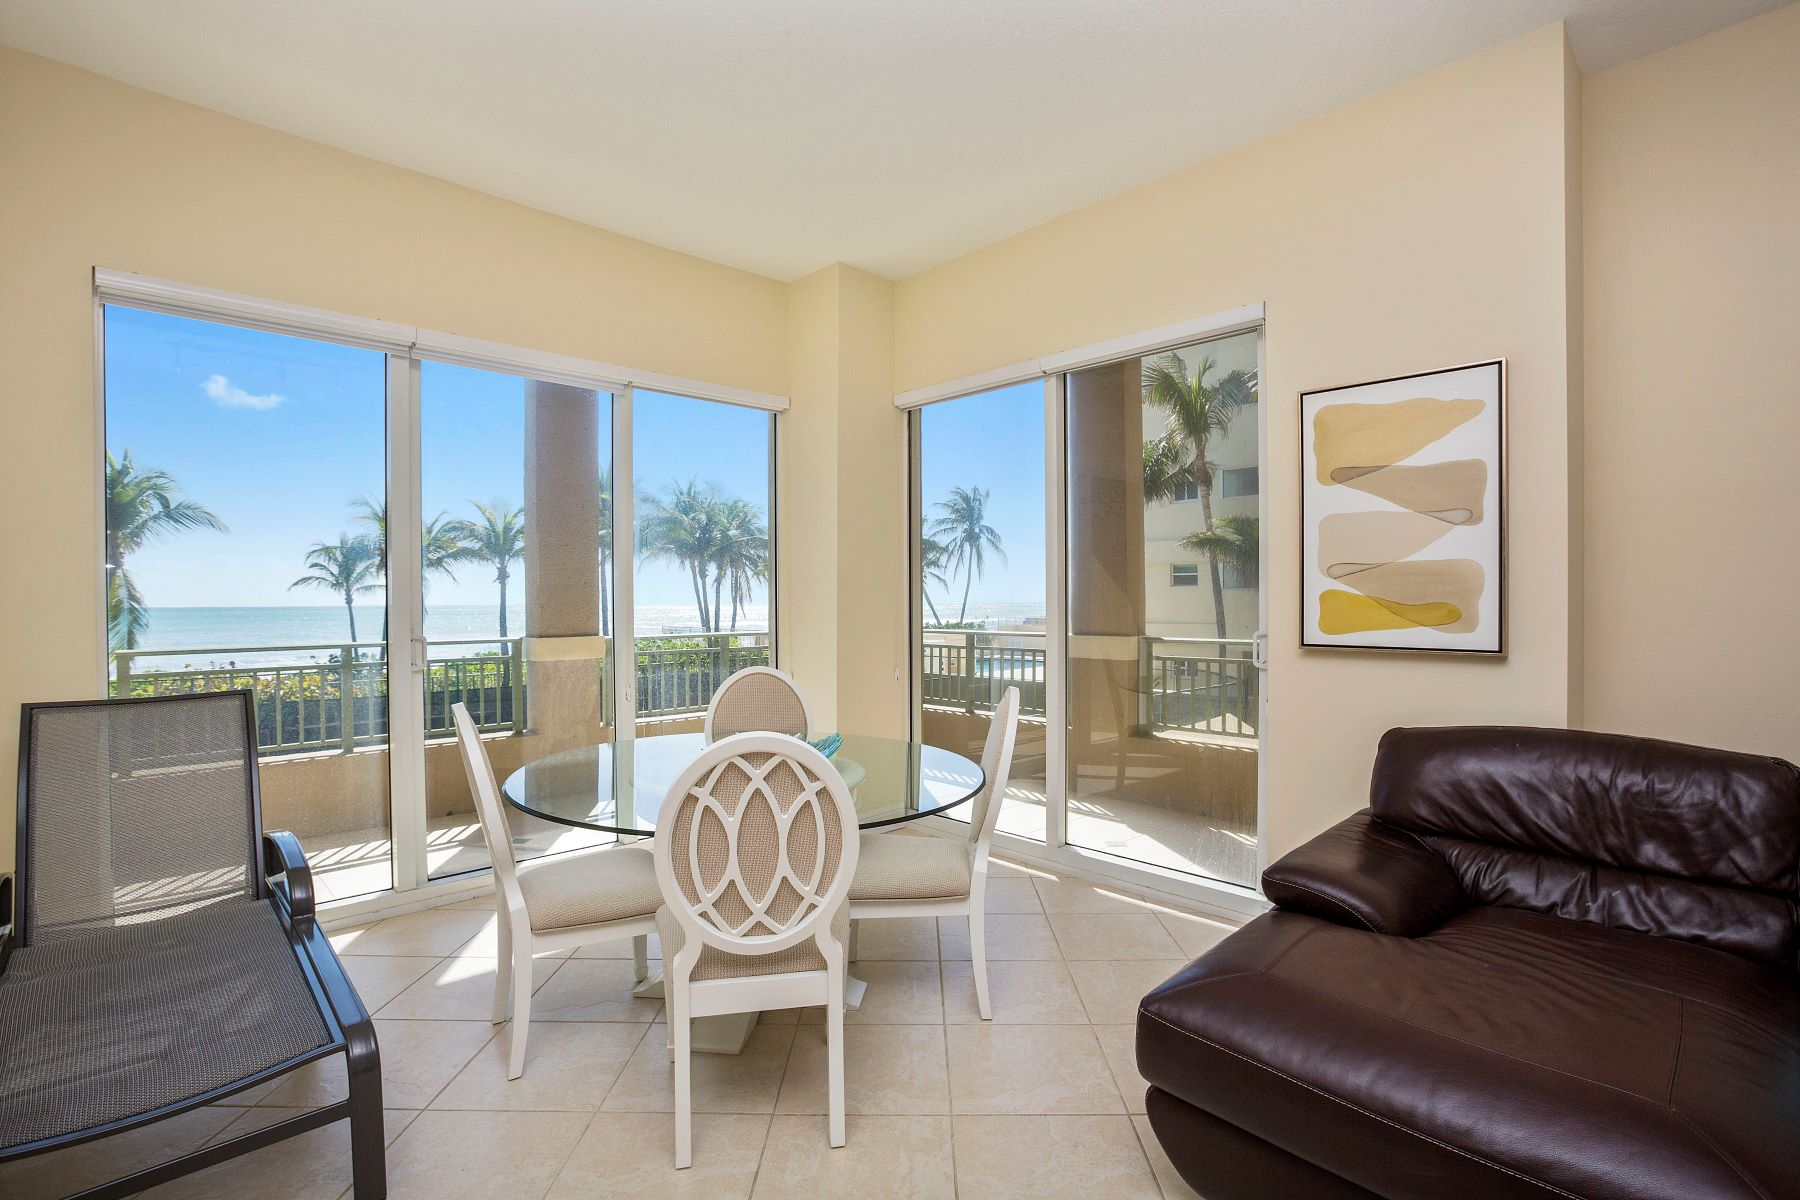 Condominiums for Sale at JUST REDUCED! 2080 S Ocean Dr 111, Hallandale, Florida 33009 United States